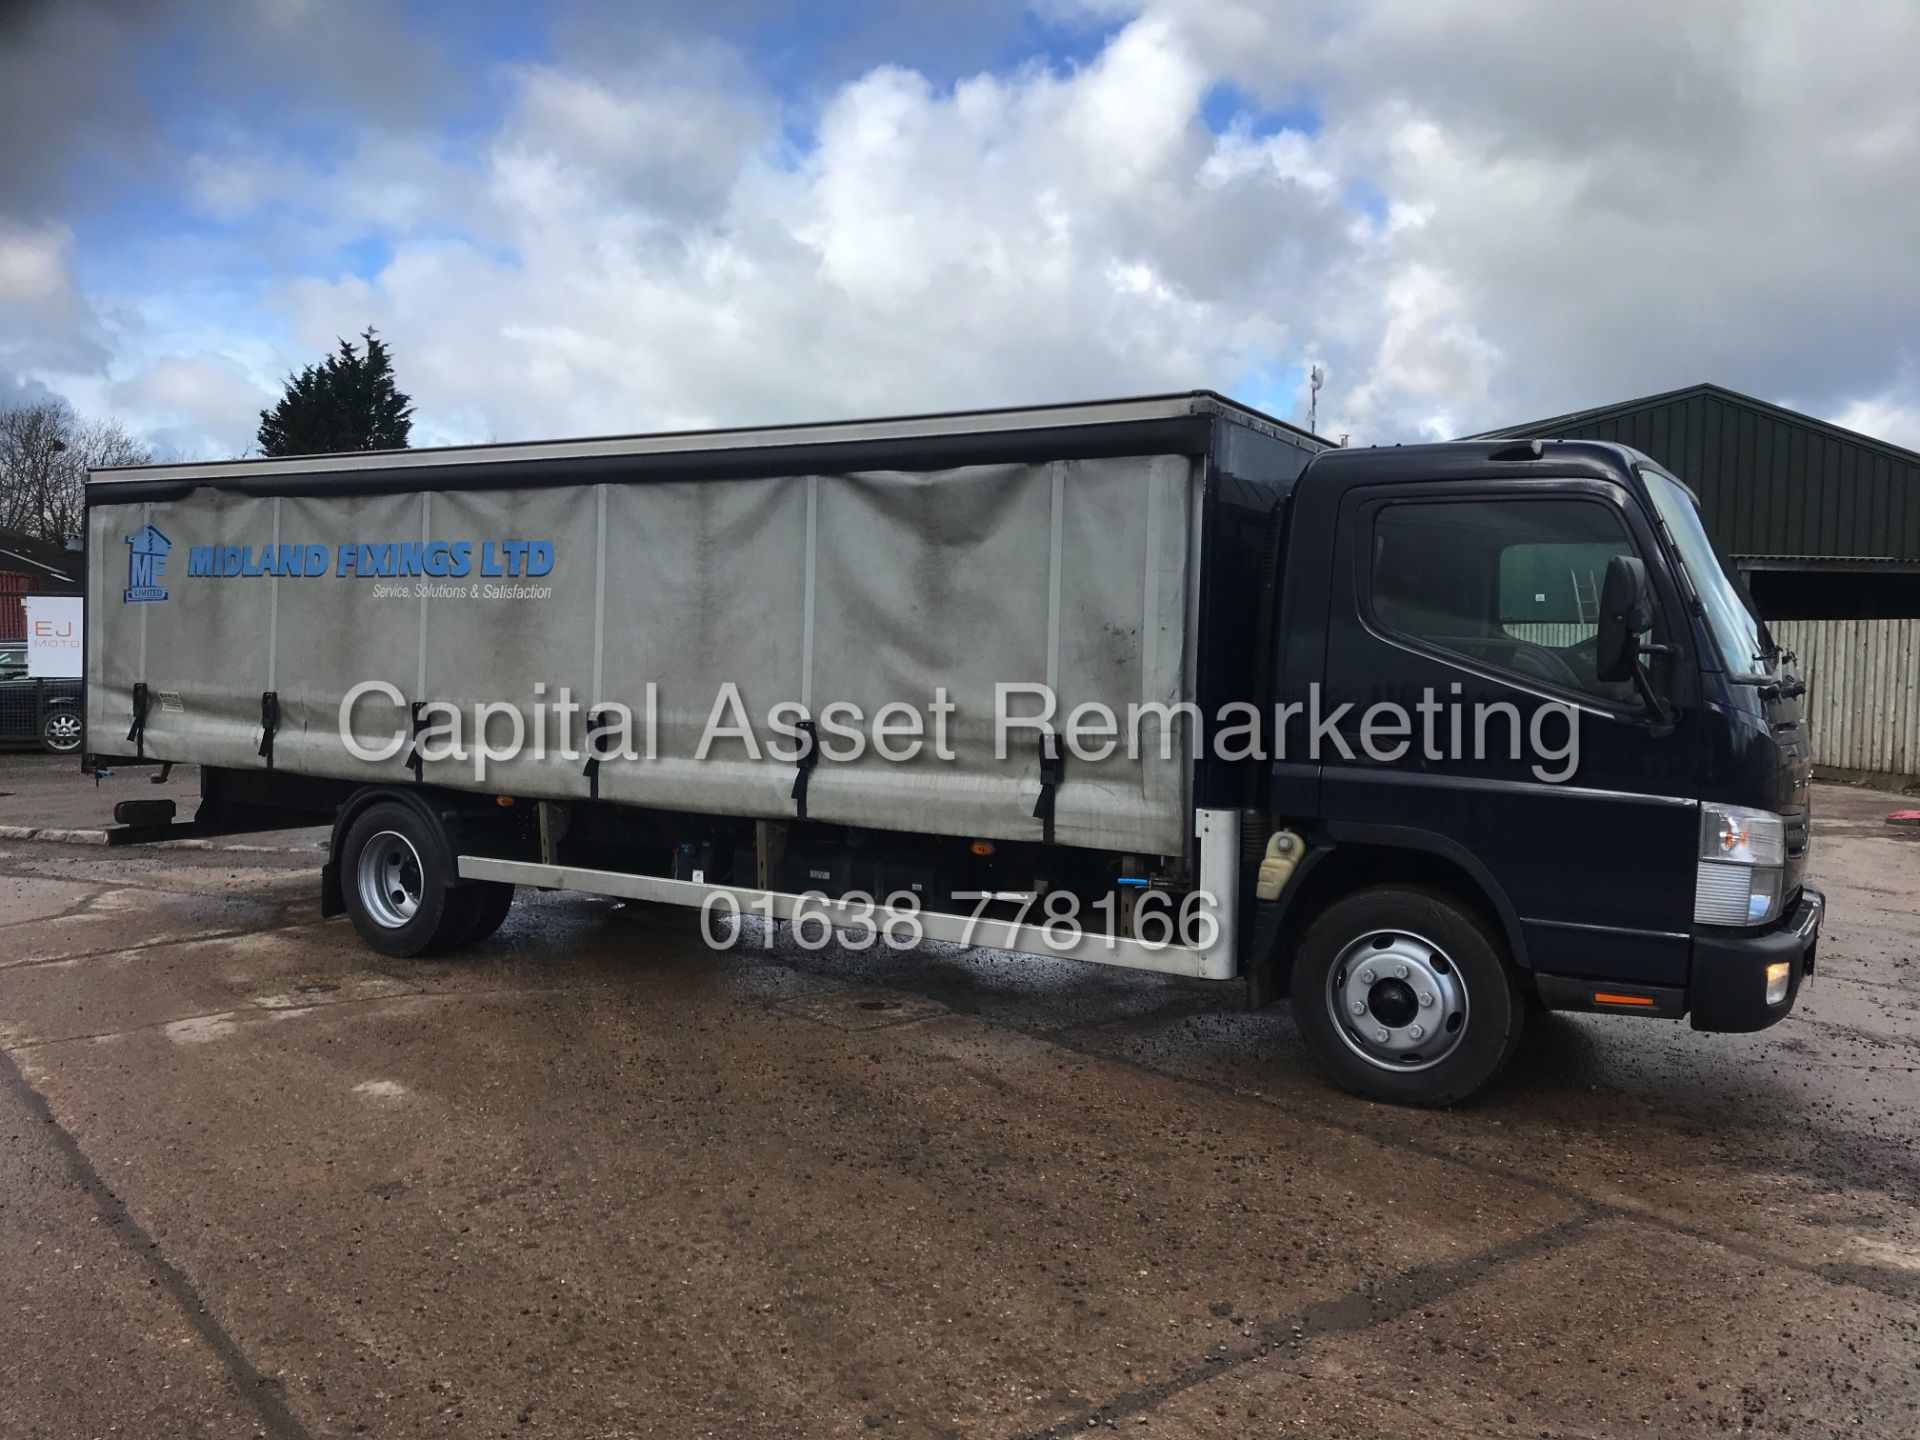 (ON SALE) MITSUBISHI FUSO CANTER 7C18 (16 REG) 1 OWNER *EURO 6* AD-BLUE - 4 WAY CAMERA SYSTEM - Image 7 of 20